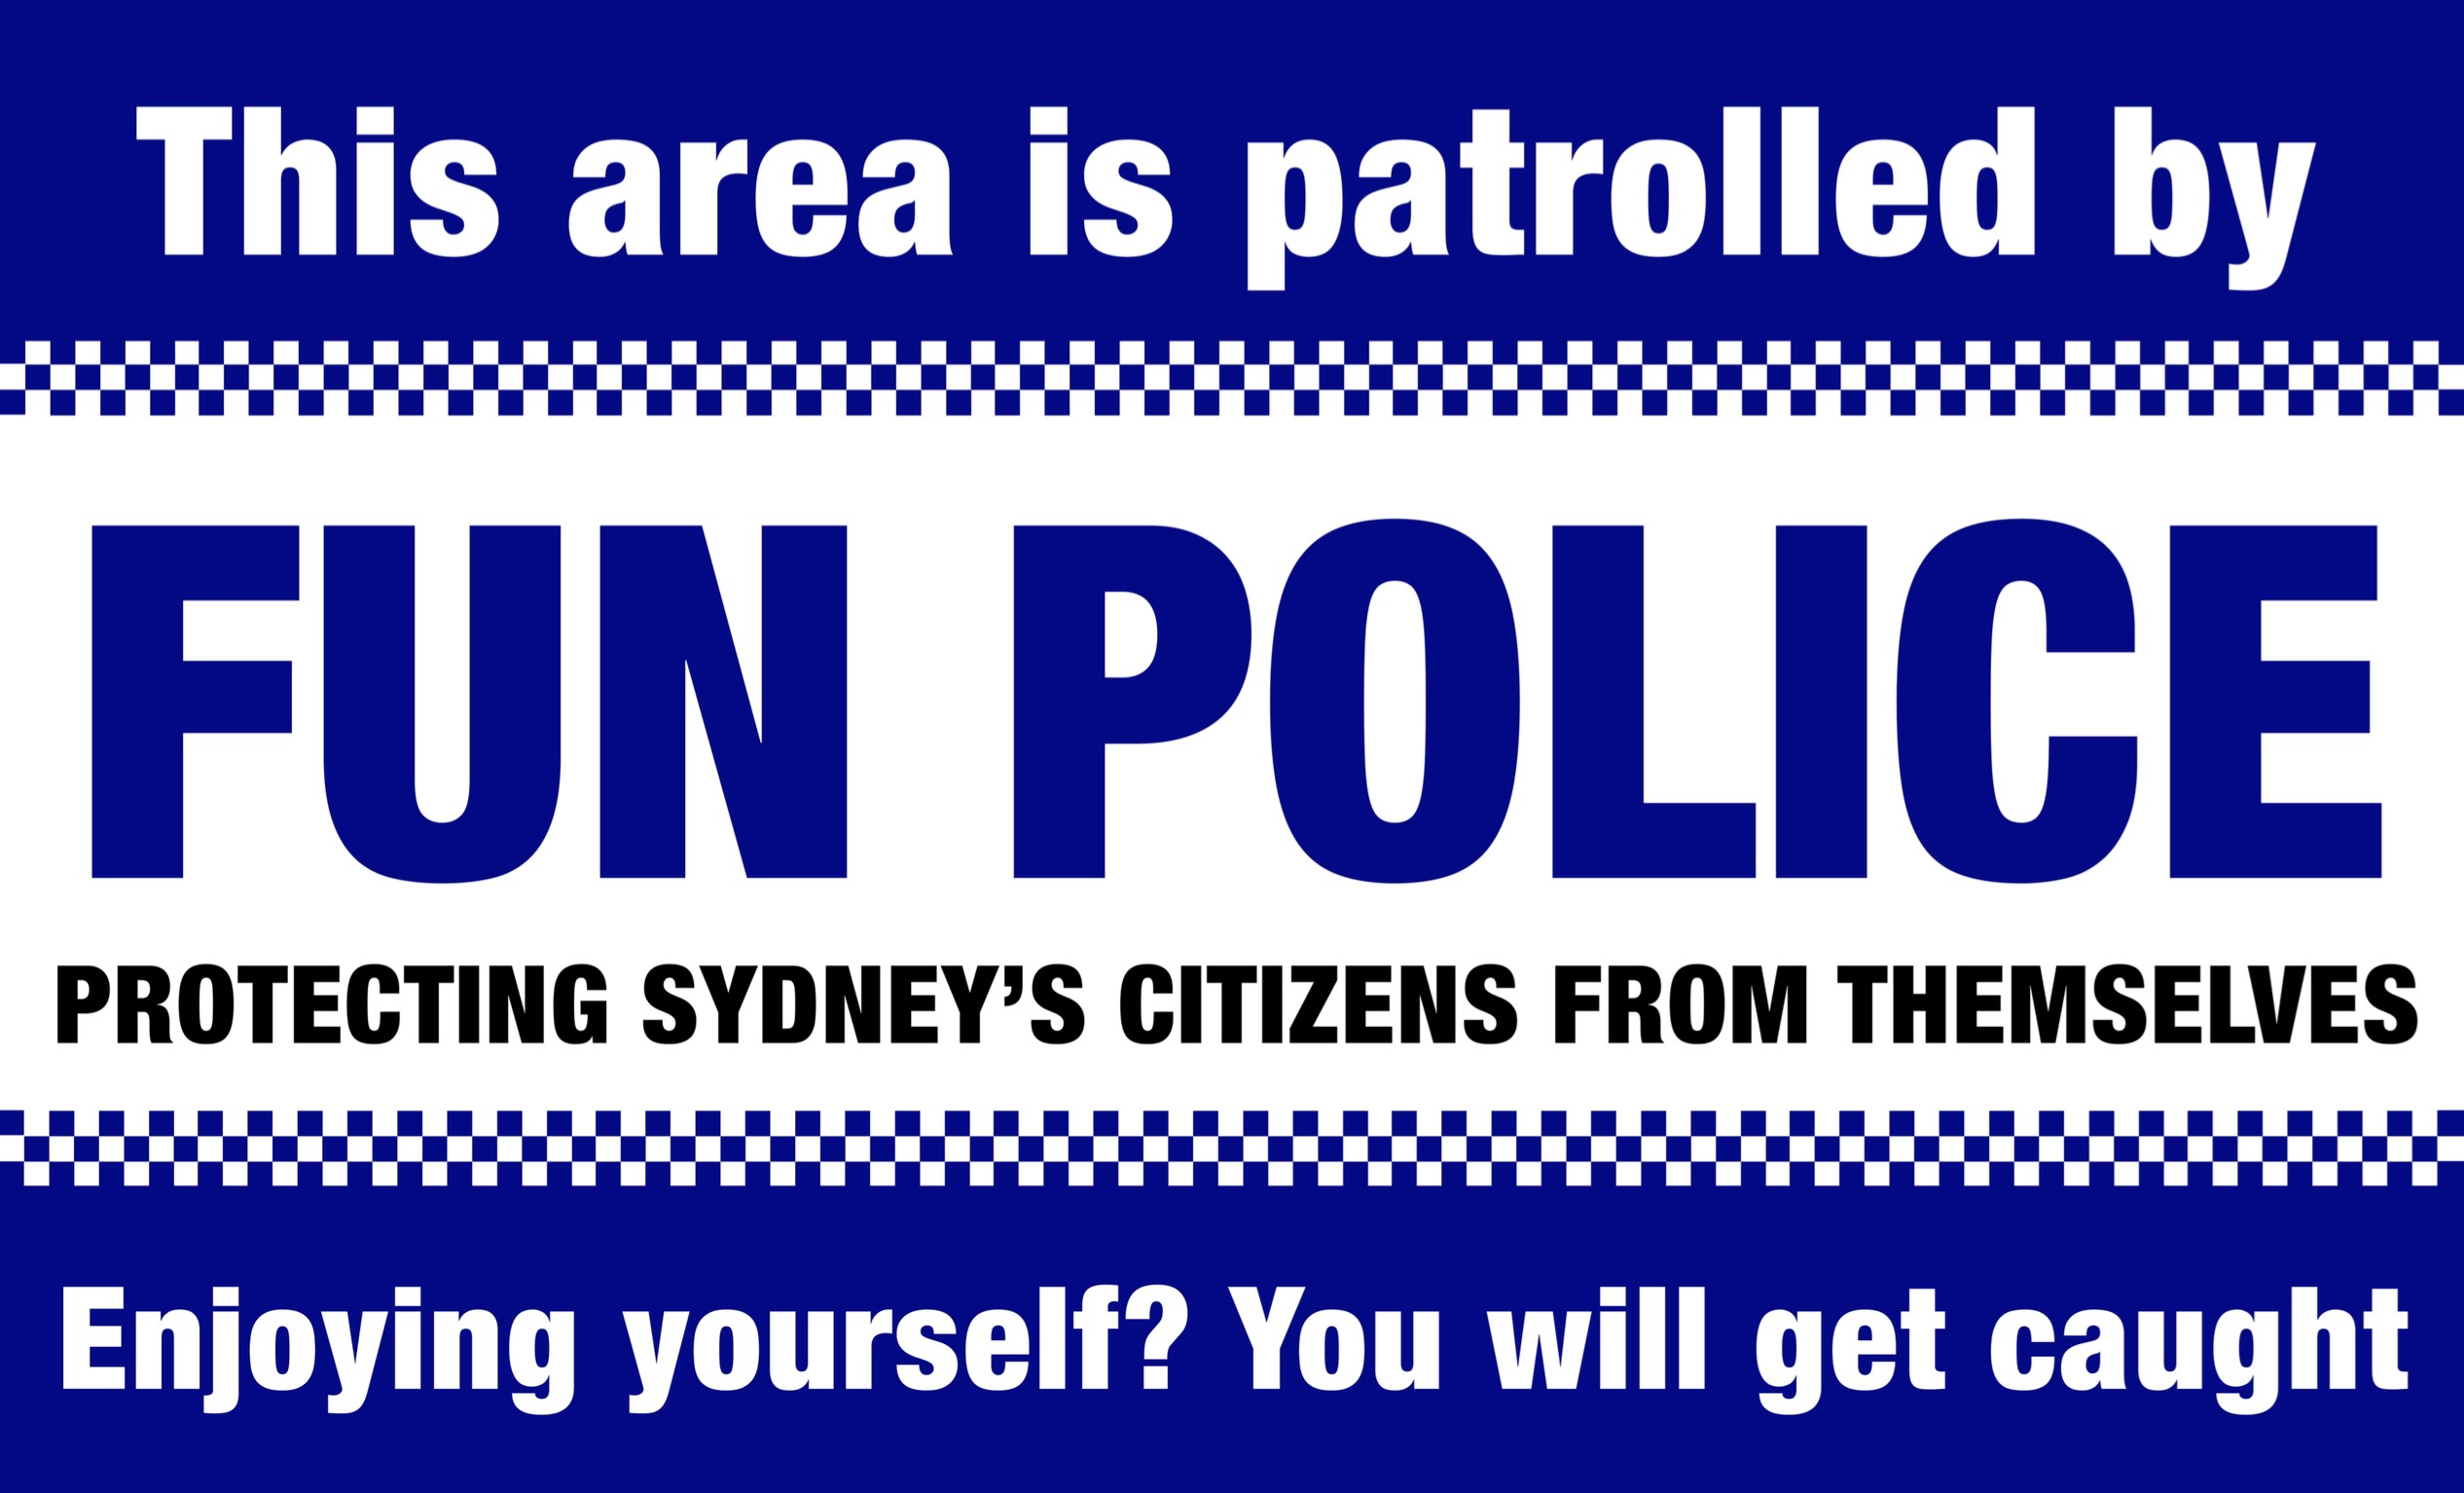 This area is patrolled by fun police